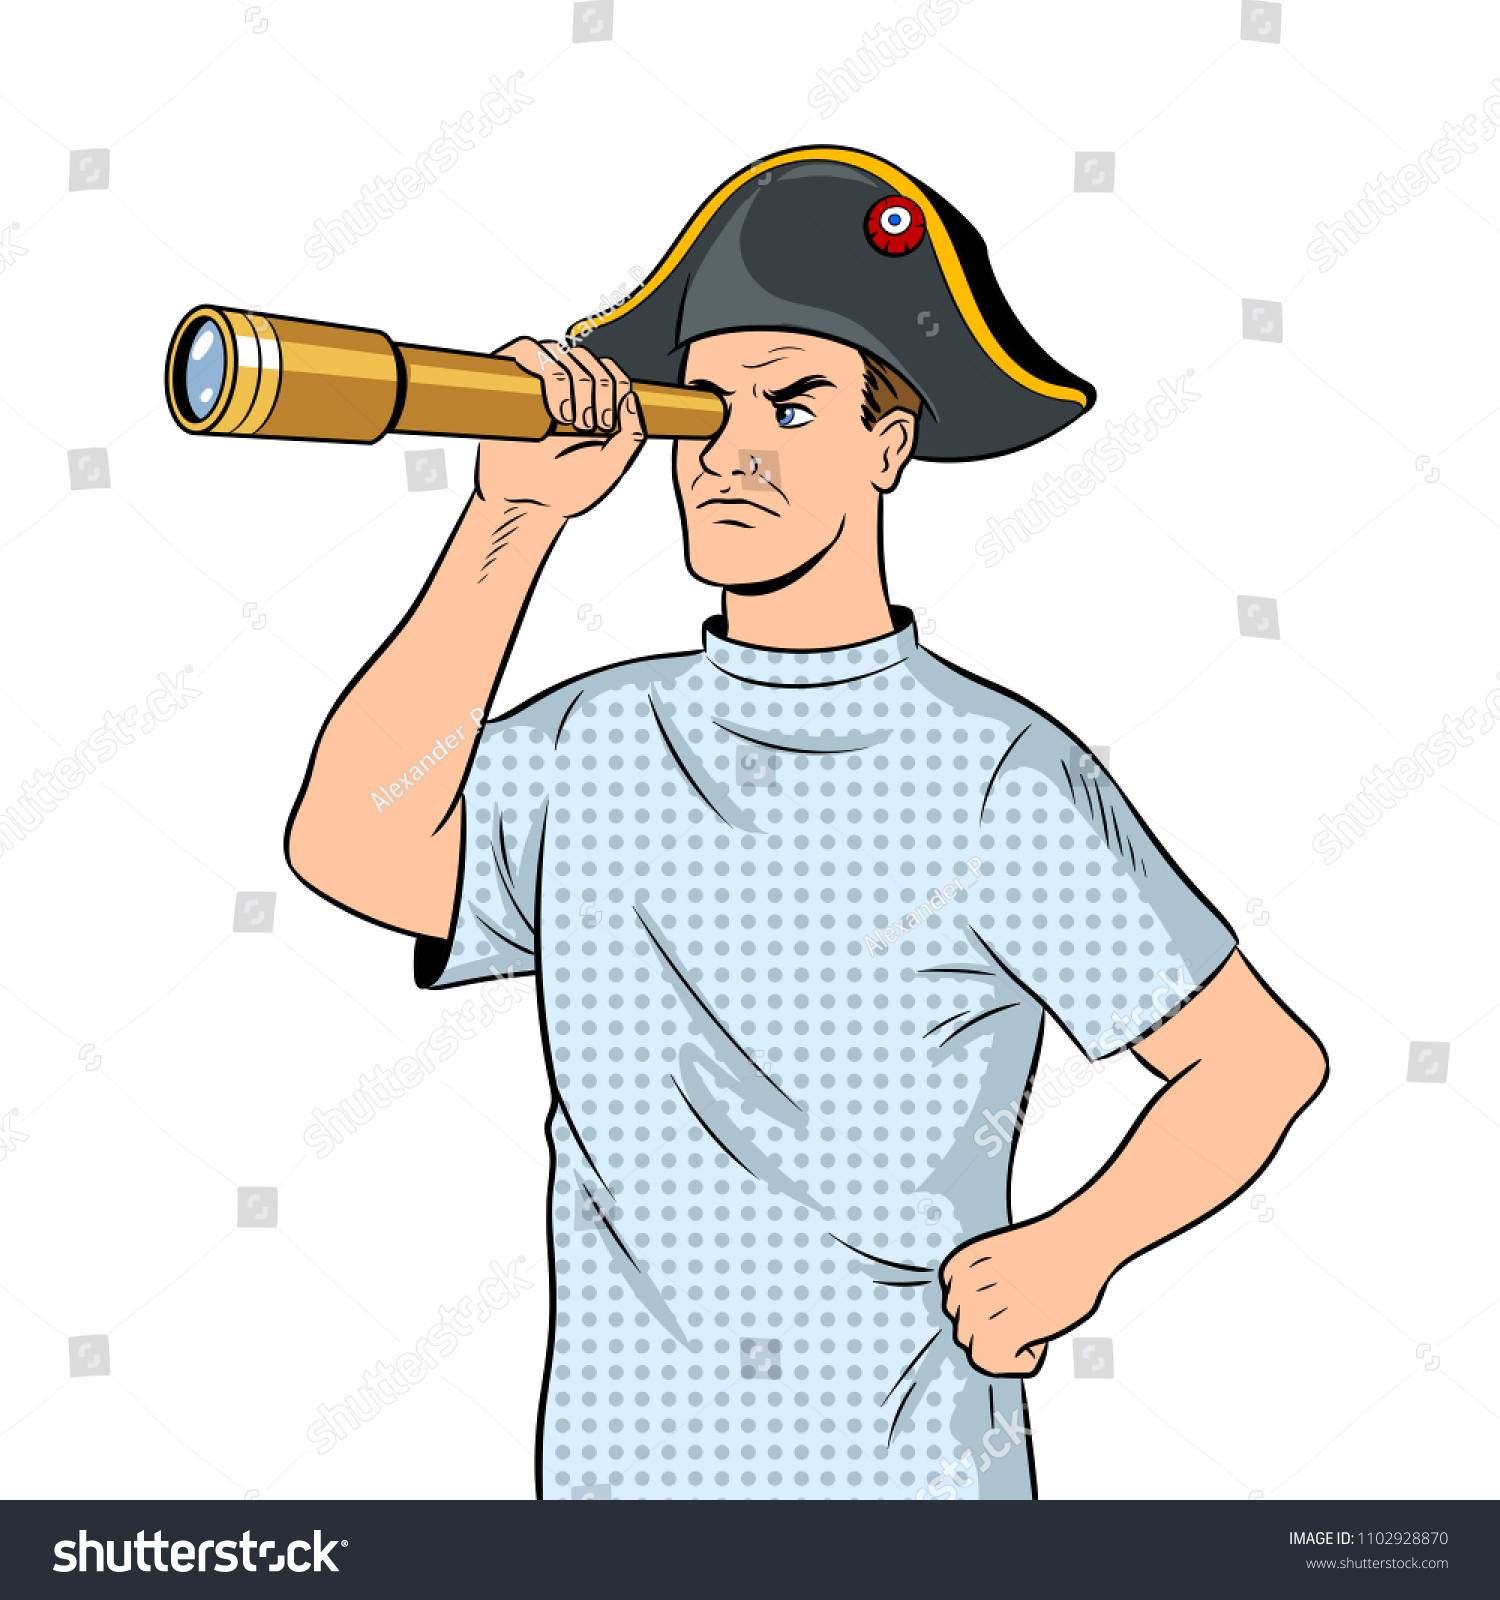 Mentally ill dressed in Napoleon hat with telescope pop art retro raster  illustration. Isolated image d7ace766676